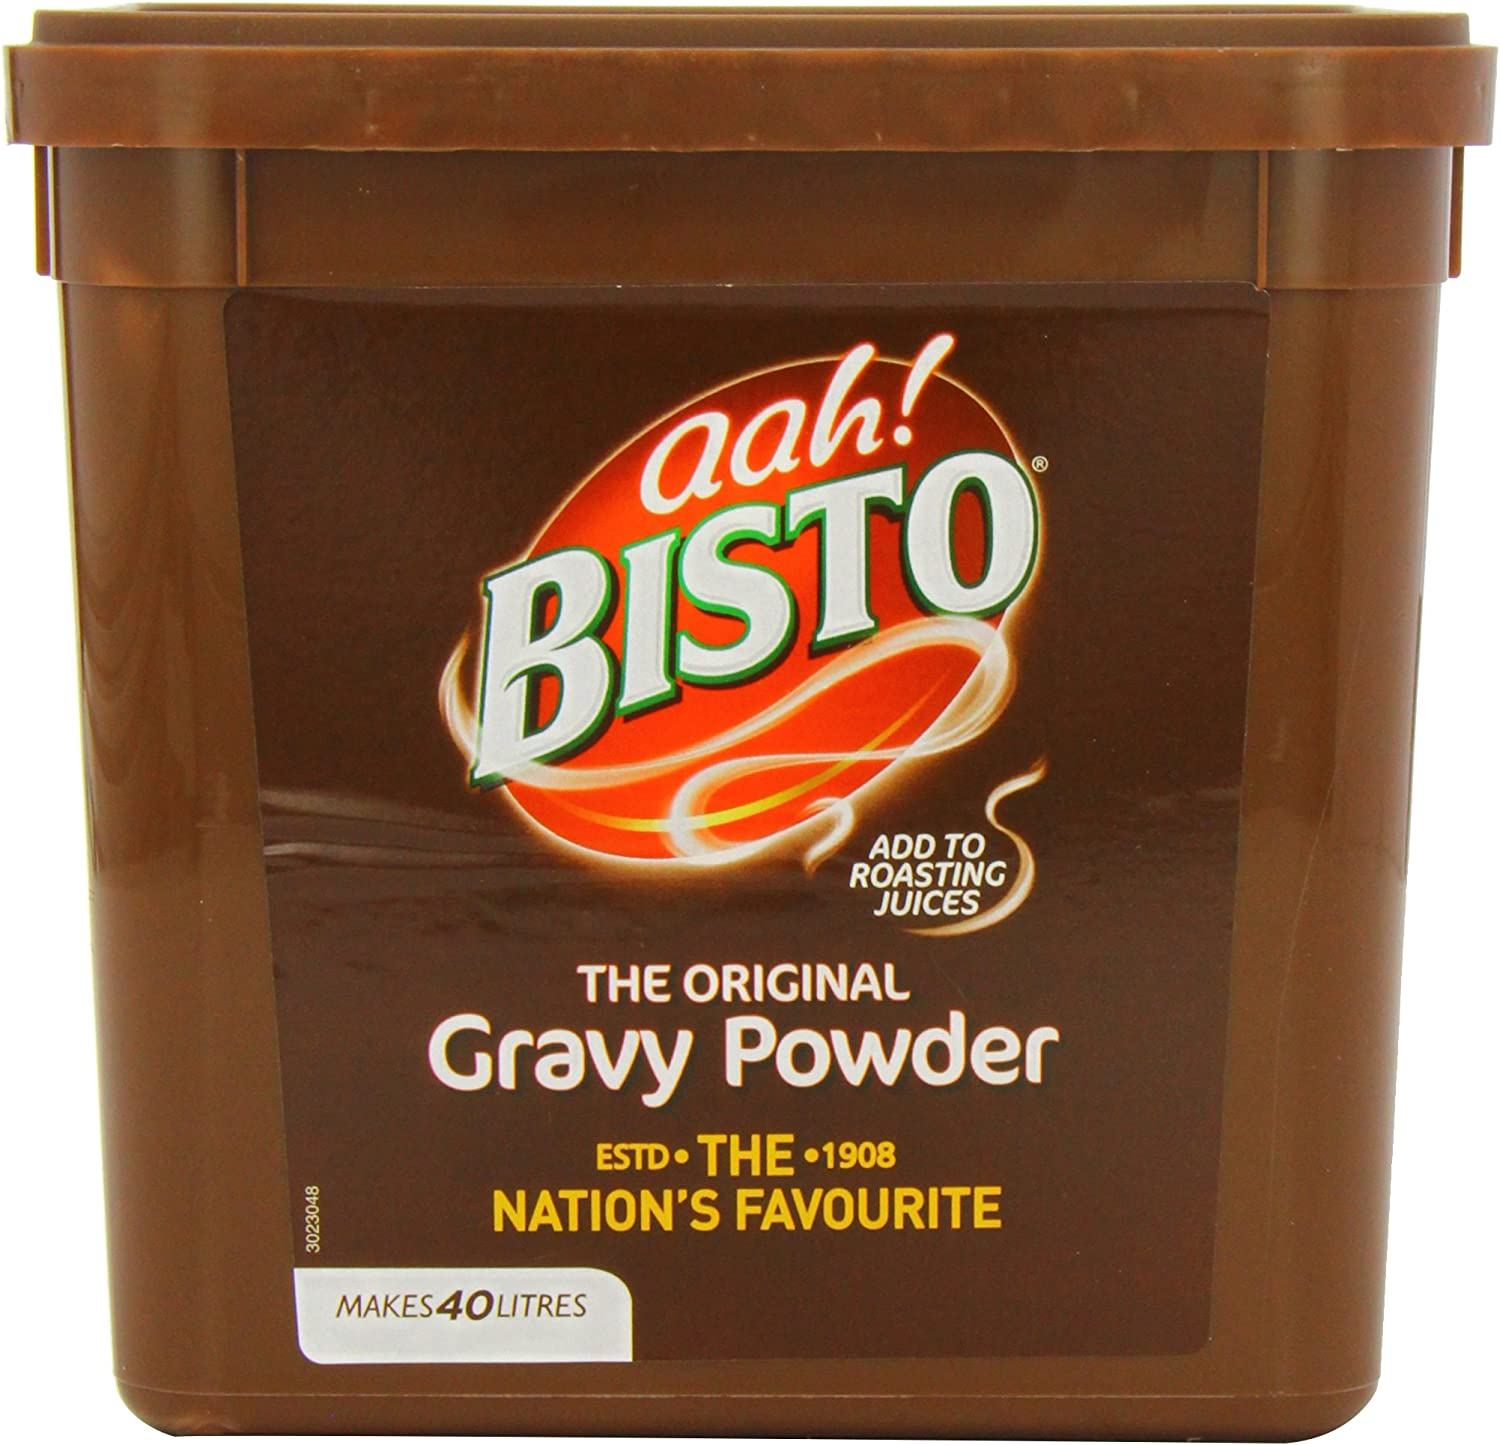 Bisto Original Gravy Powder 40 Litre: Amazon.co.uk: Grocery